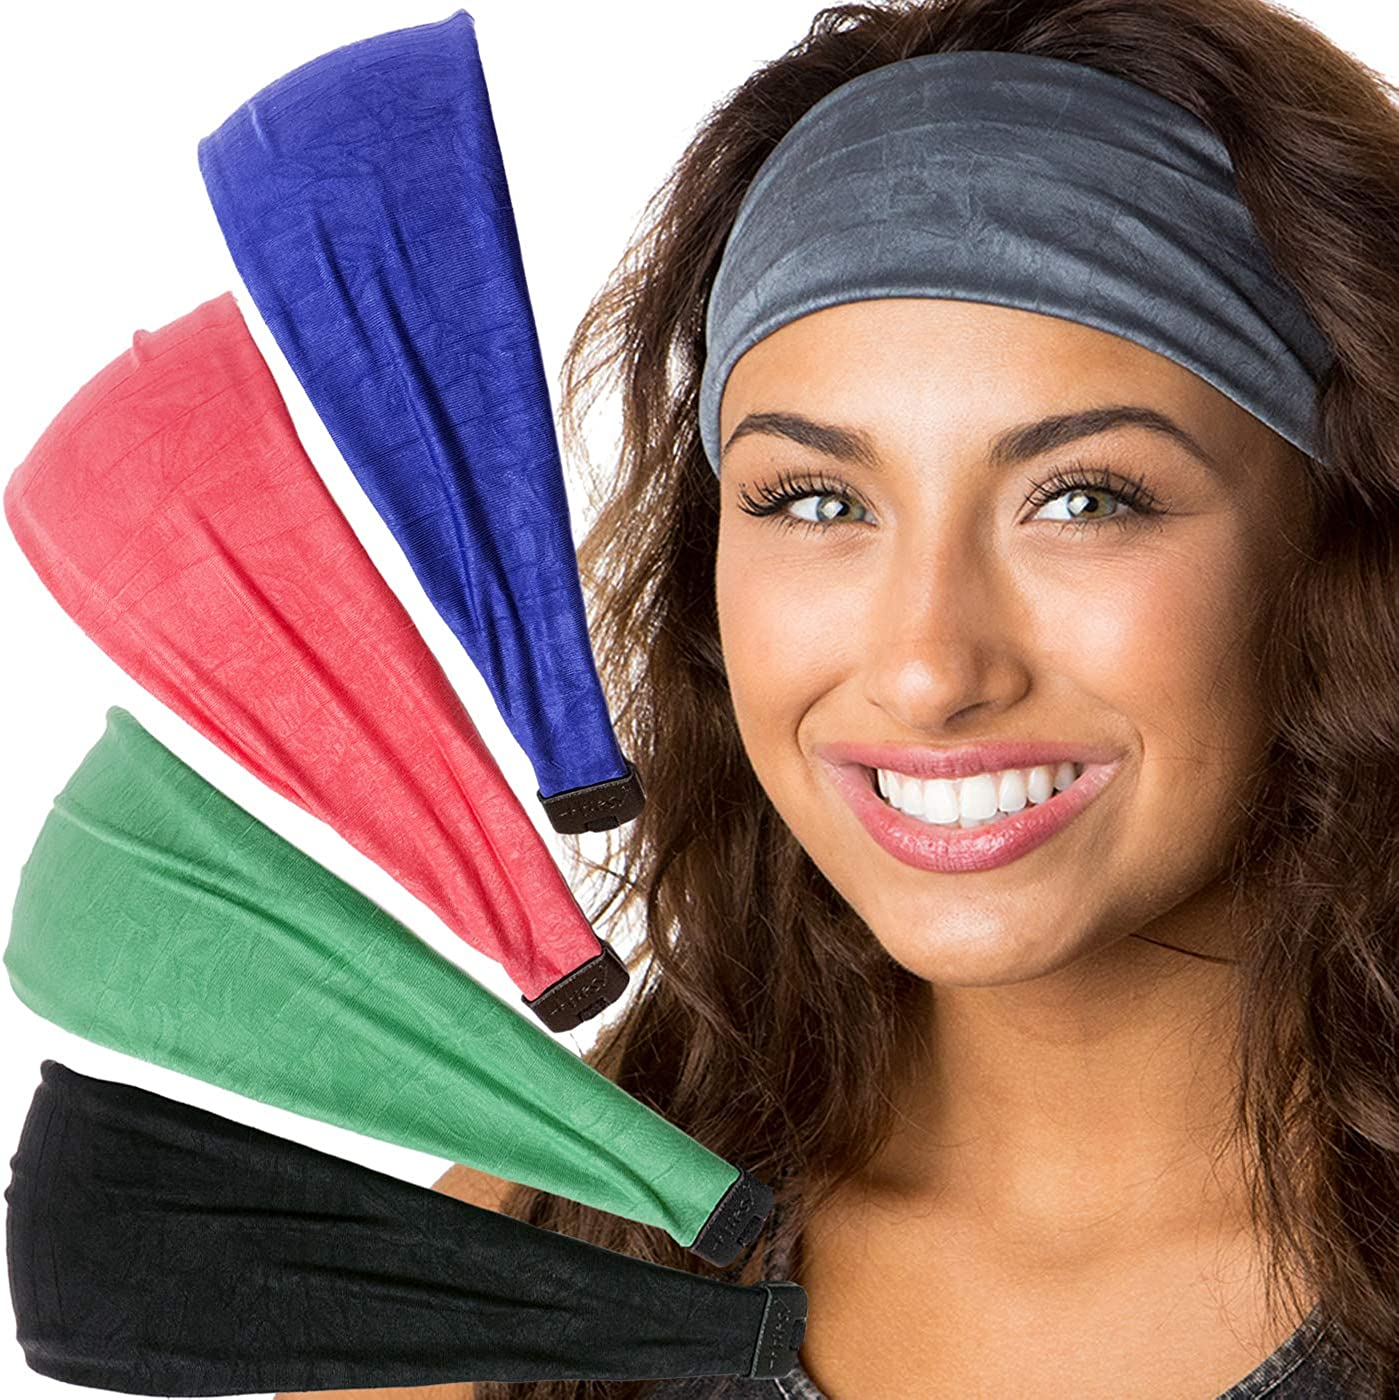 Hipsy Adjustable & Stretchy Crushed Xflex Wide Headbands for Women Girls & Teens